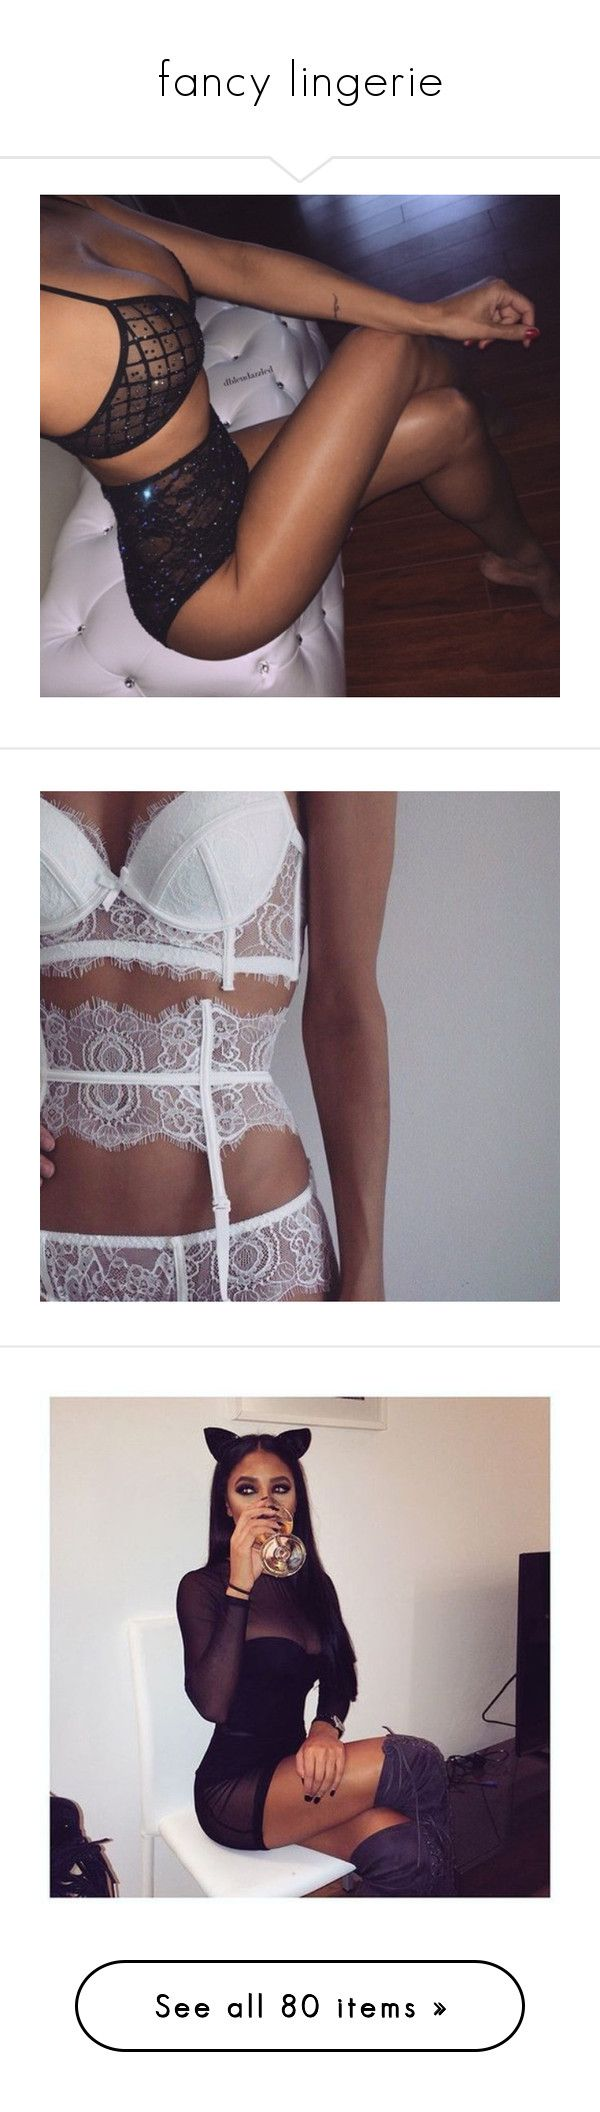 """fancy lingerie"" by eniola29 ❤ liked on Polyvore featuring pictures, intimates, bras, strappy bras, strappy lingerie, sexy lace bra, lace push up bra, strappy lace bra, sexy lingerie and summer lingerie"